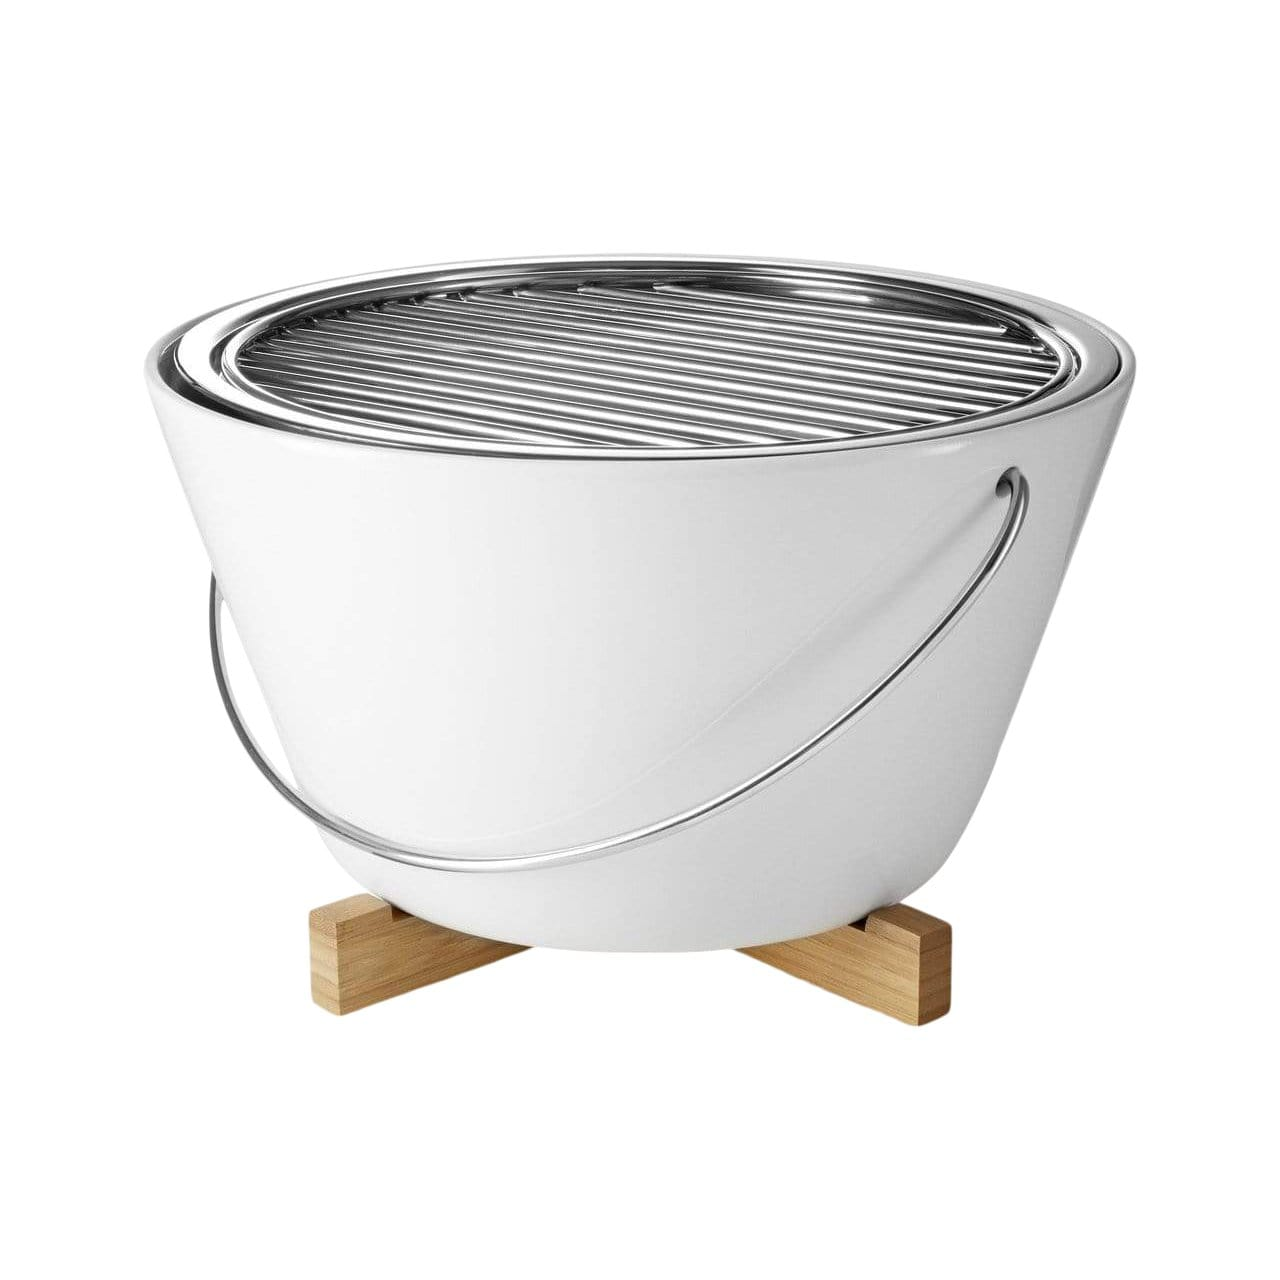 Porcelain Table Grill